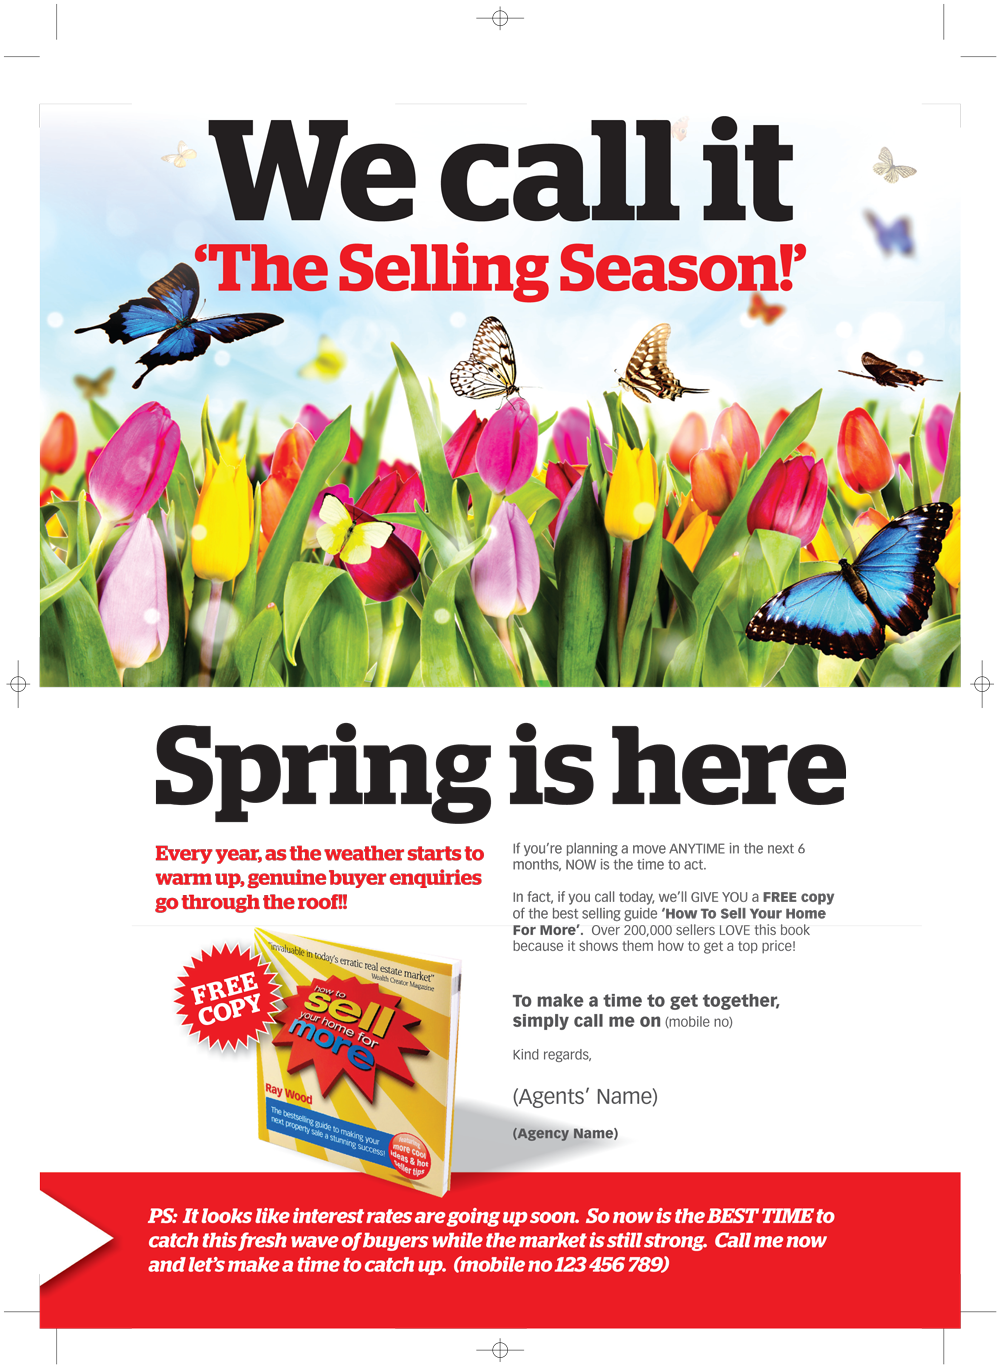 lead generator flyer selling in spring bestagentsinc com flyer